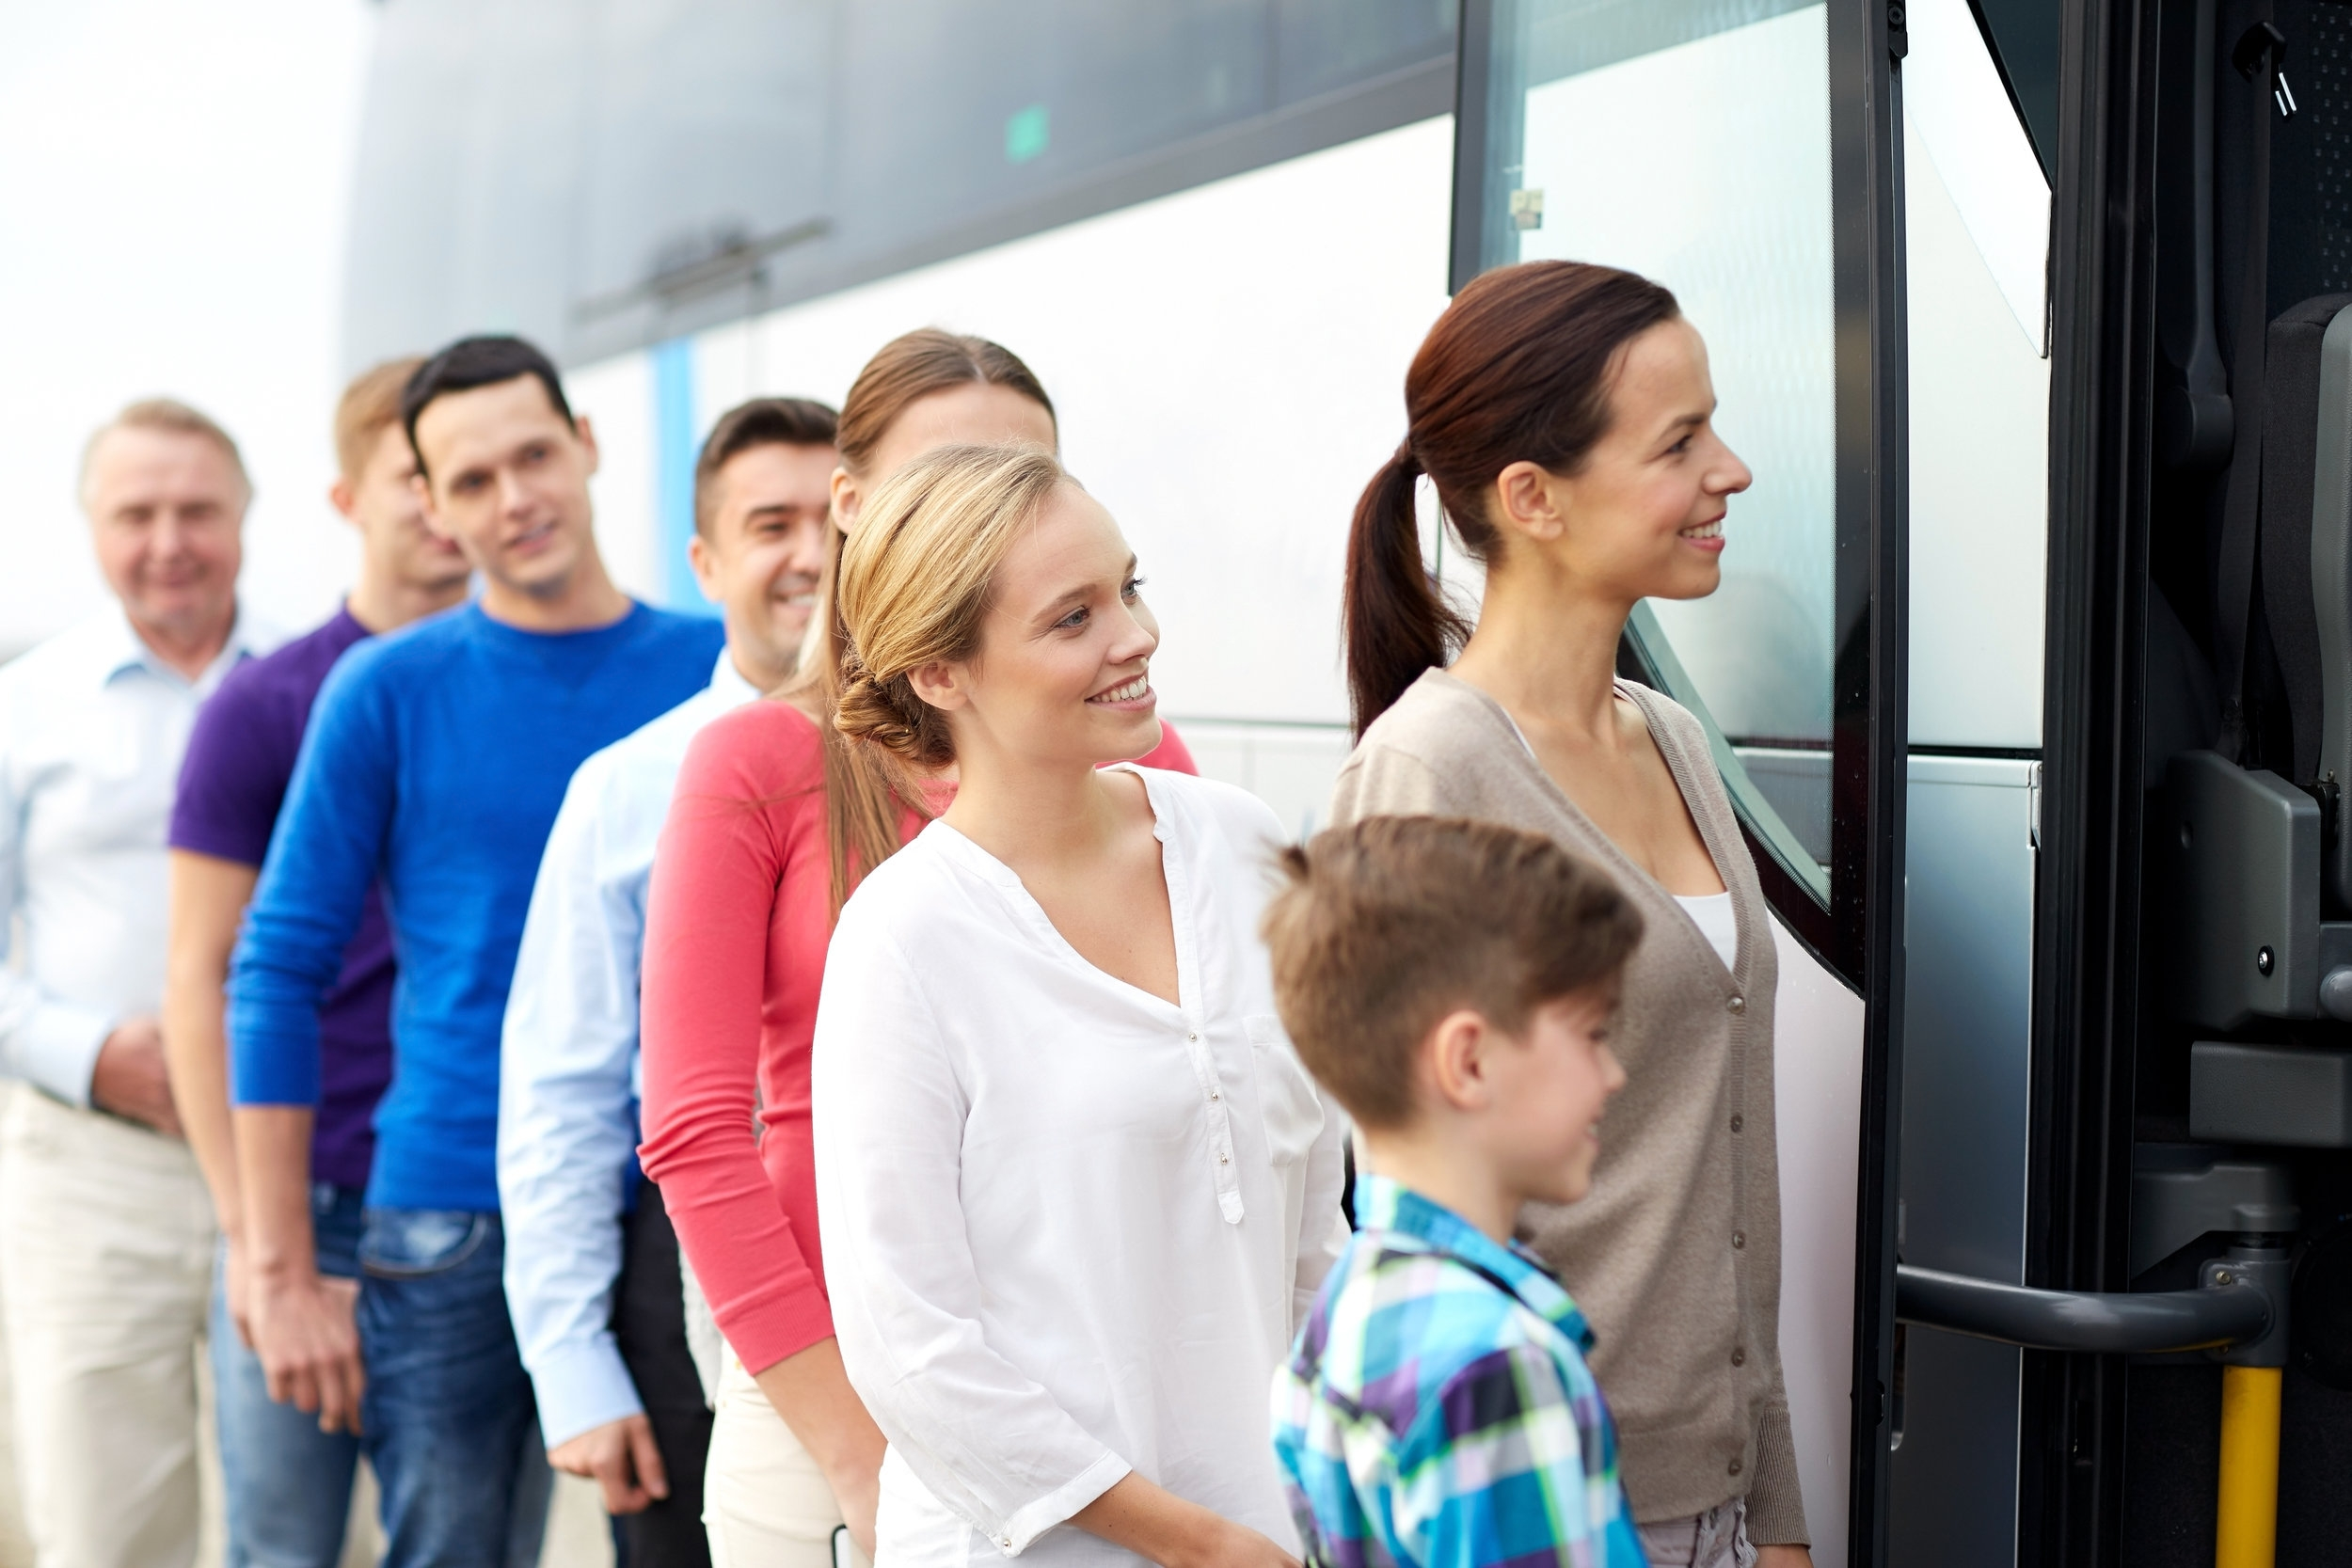 MotorcoachOperators - Find a quality FMA motorcoach operator, browse frequently asked questions, research a company's safety record, and more right here!